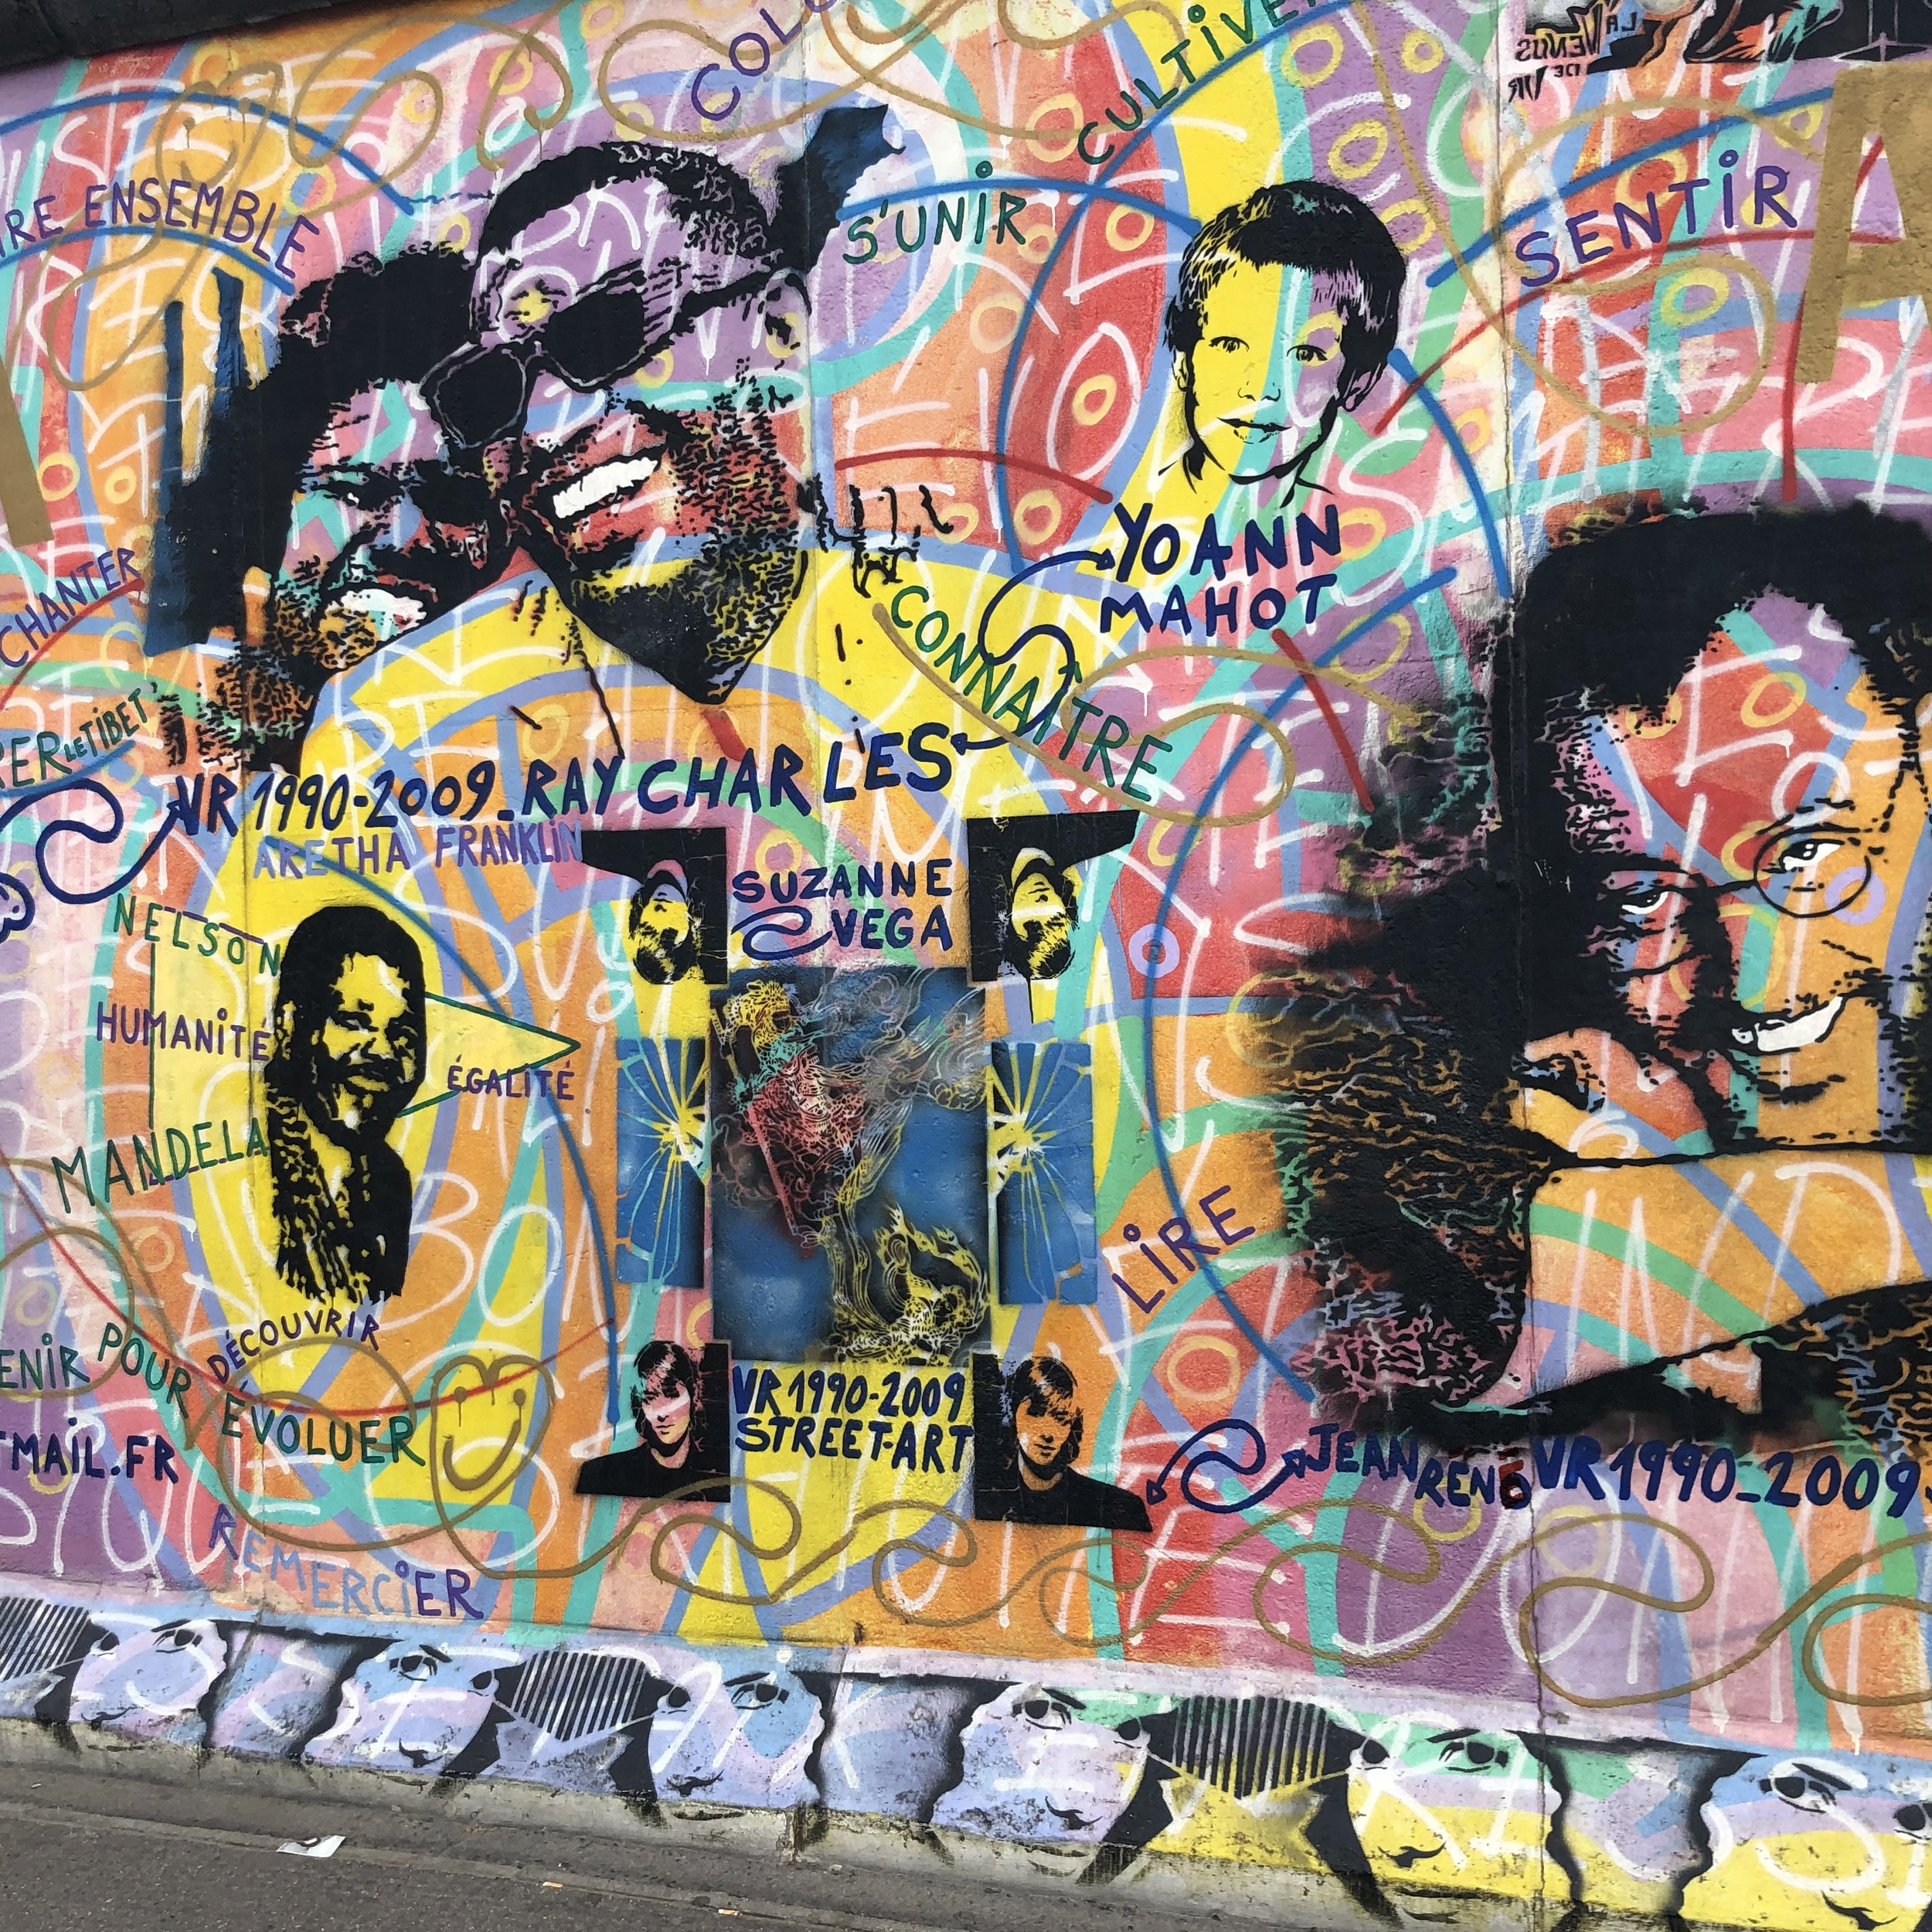 Many of the murals painted on the wall had a theme promoting peace and justice.